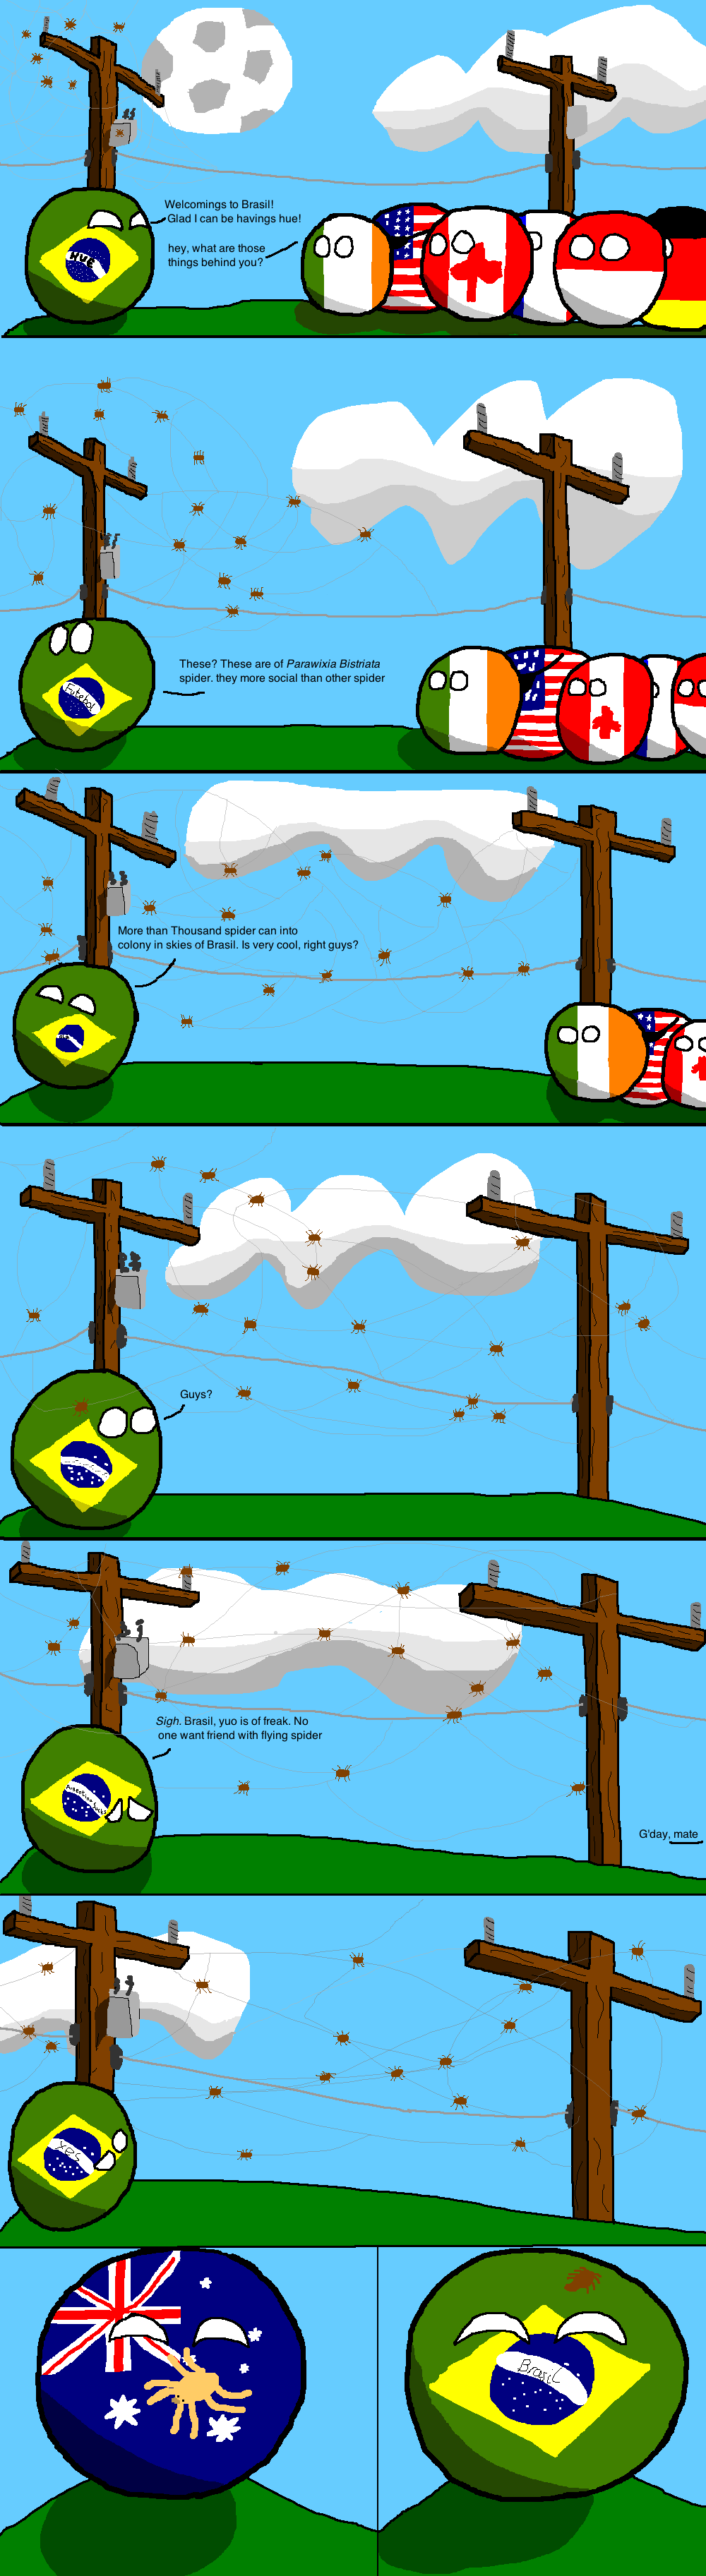 Brazil Makes a Friend